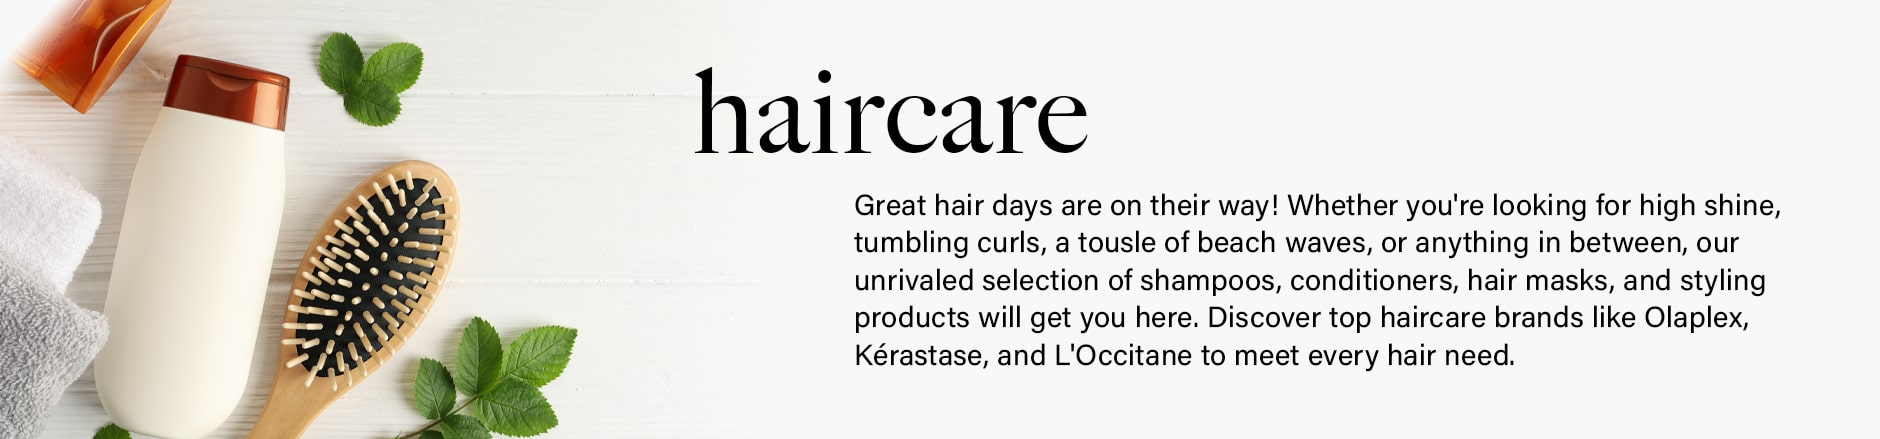 hair-care-collection-banner-image (min)